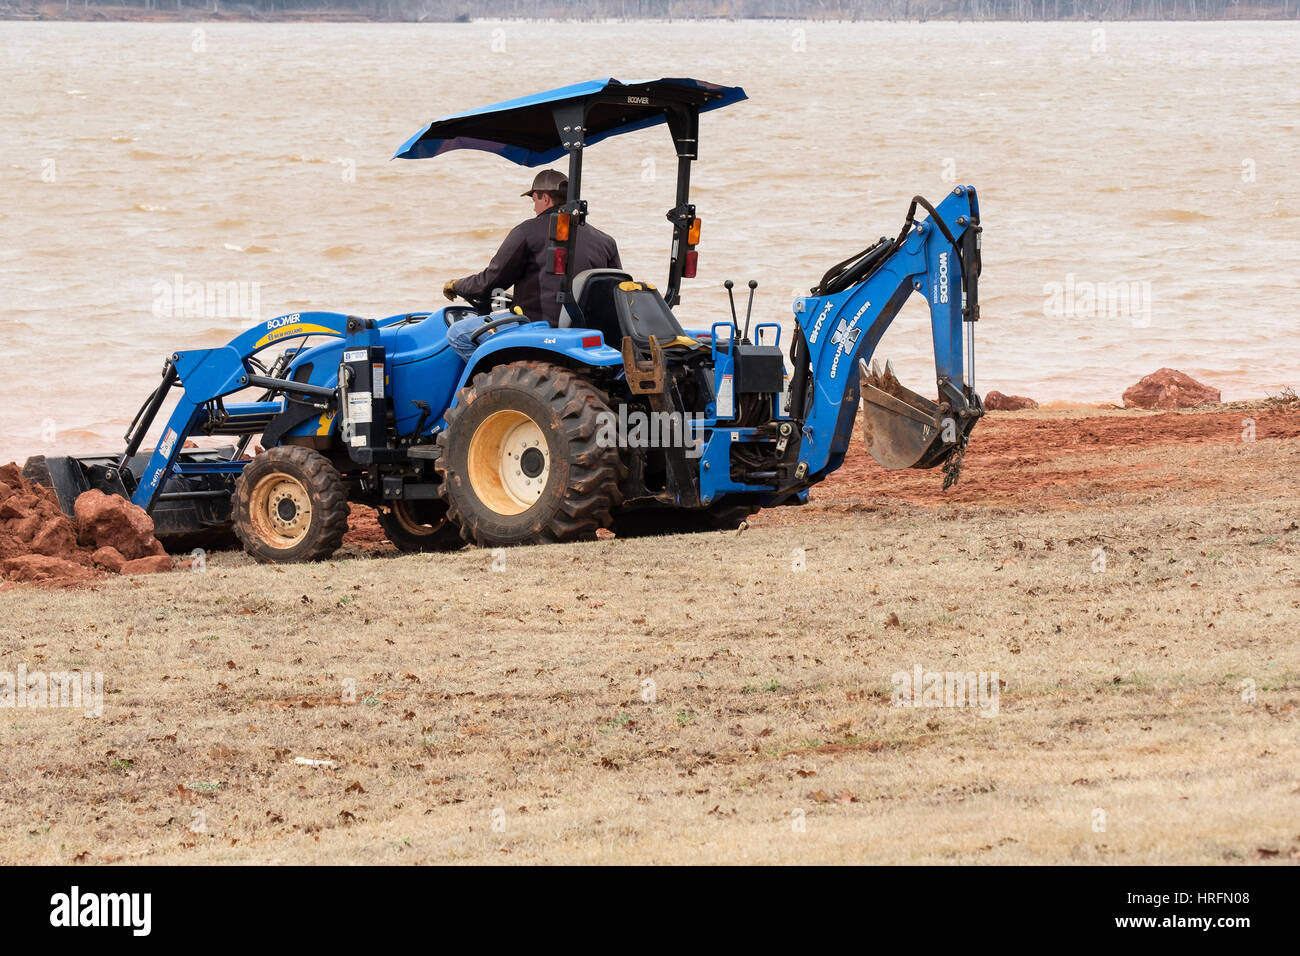 A workman moves dirt and rock with a Woods Groundbreaker BH70-X backhoe to shore up the bank of Arcadia lake. Oklahoma, - Stock Image